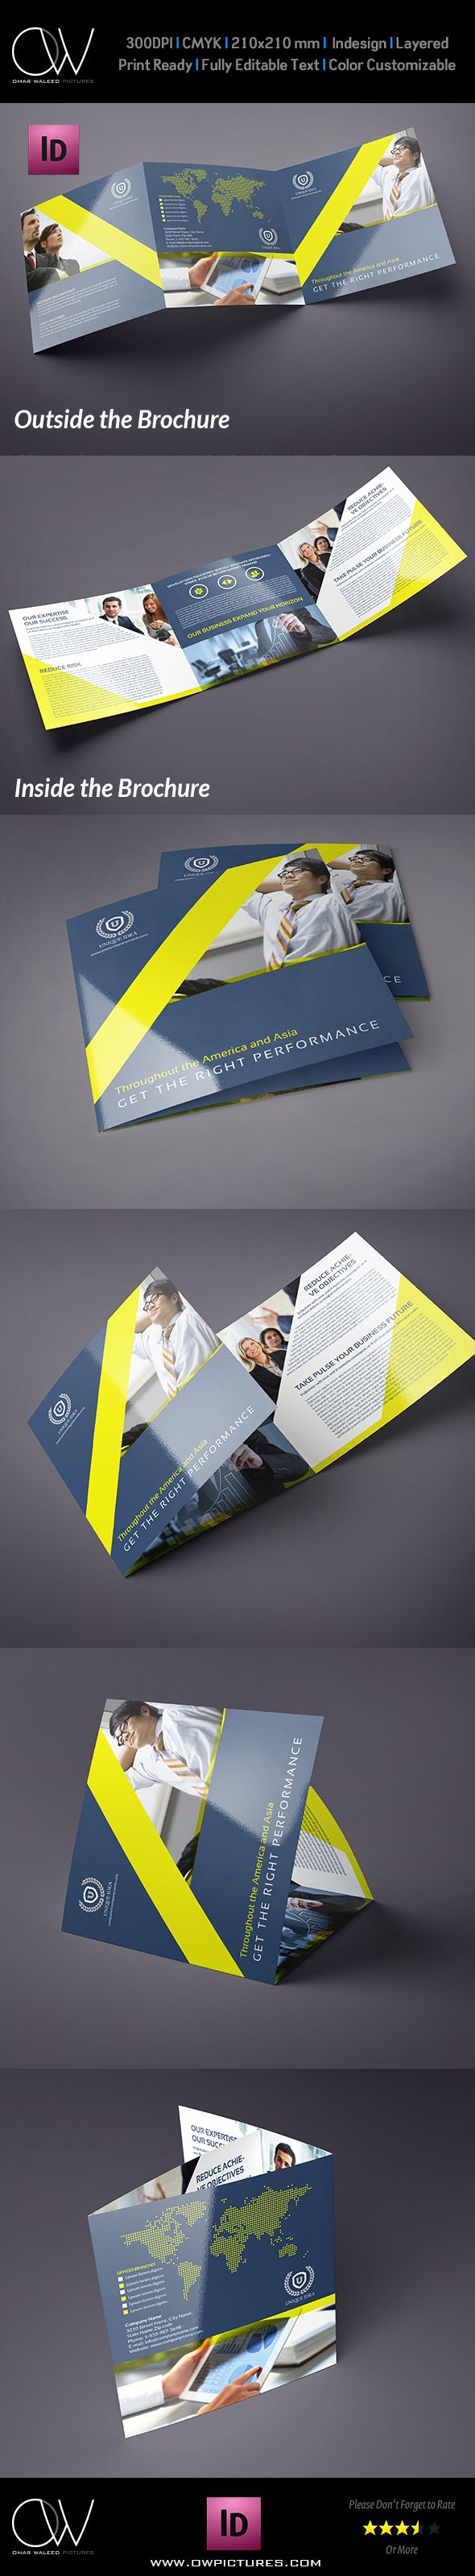 Company Brochure Tri-Fold Square Brochure Vol.8 on Behance